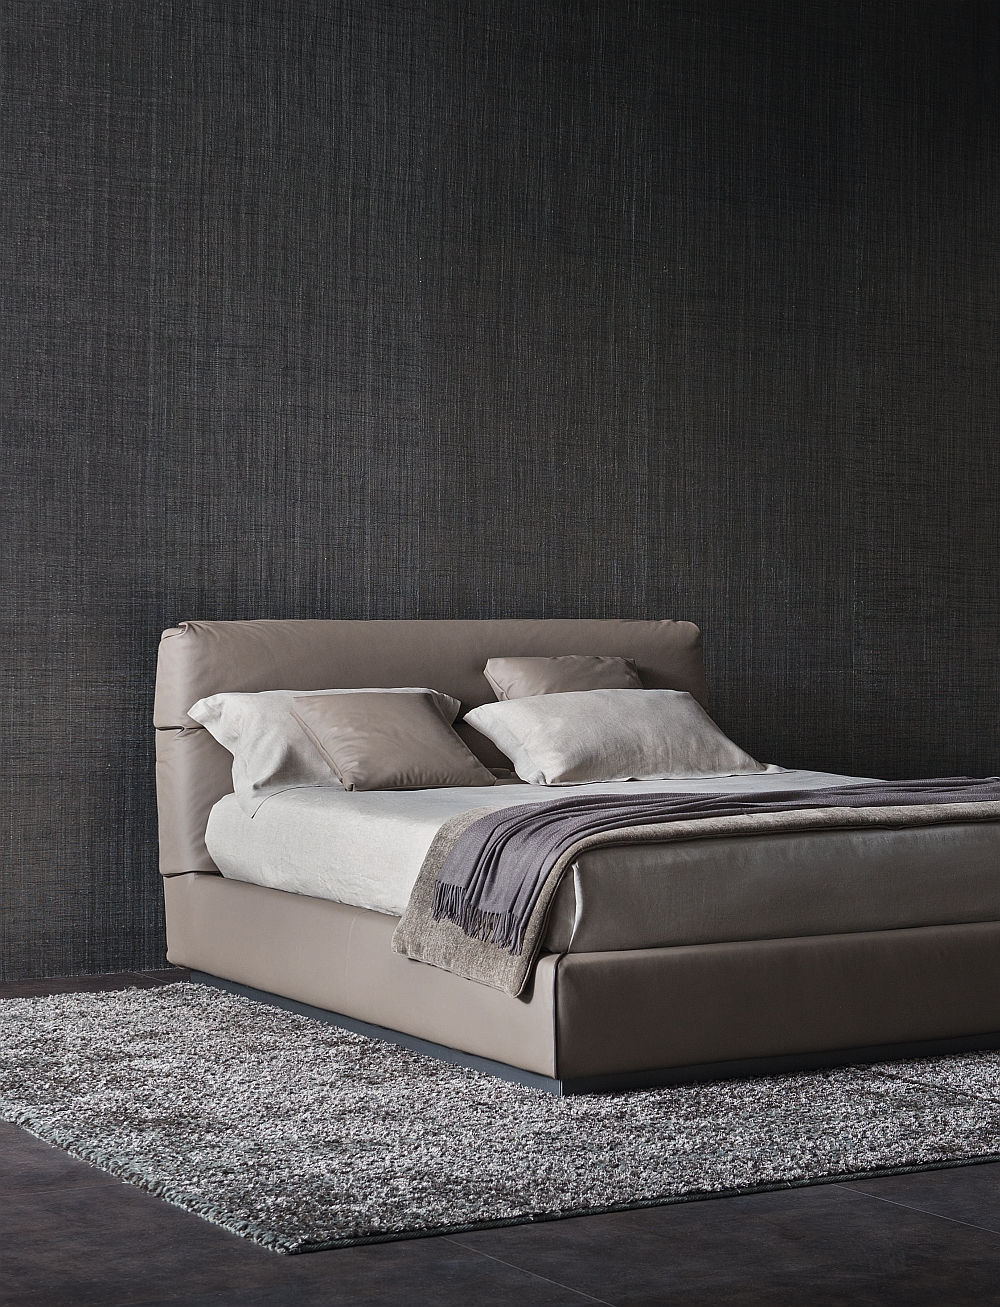 Beautiful contemporary bed with a sleek Silhouette